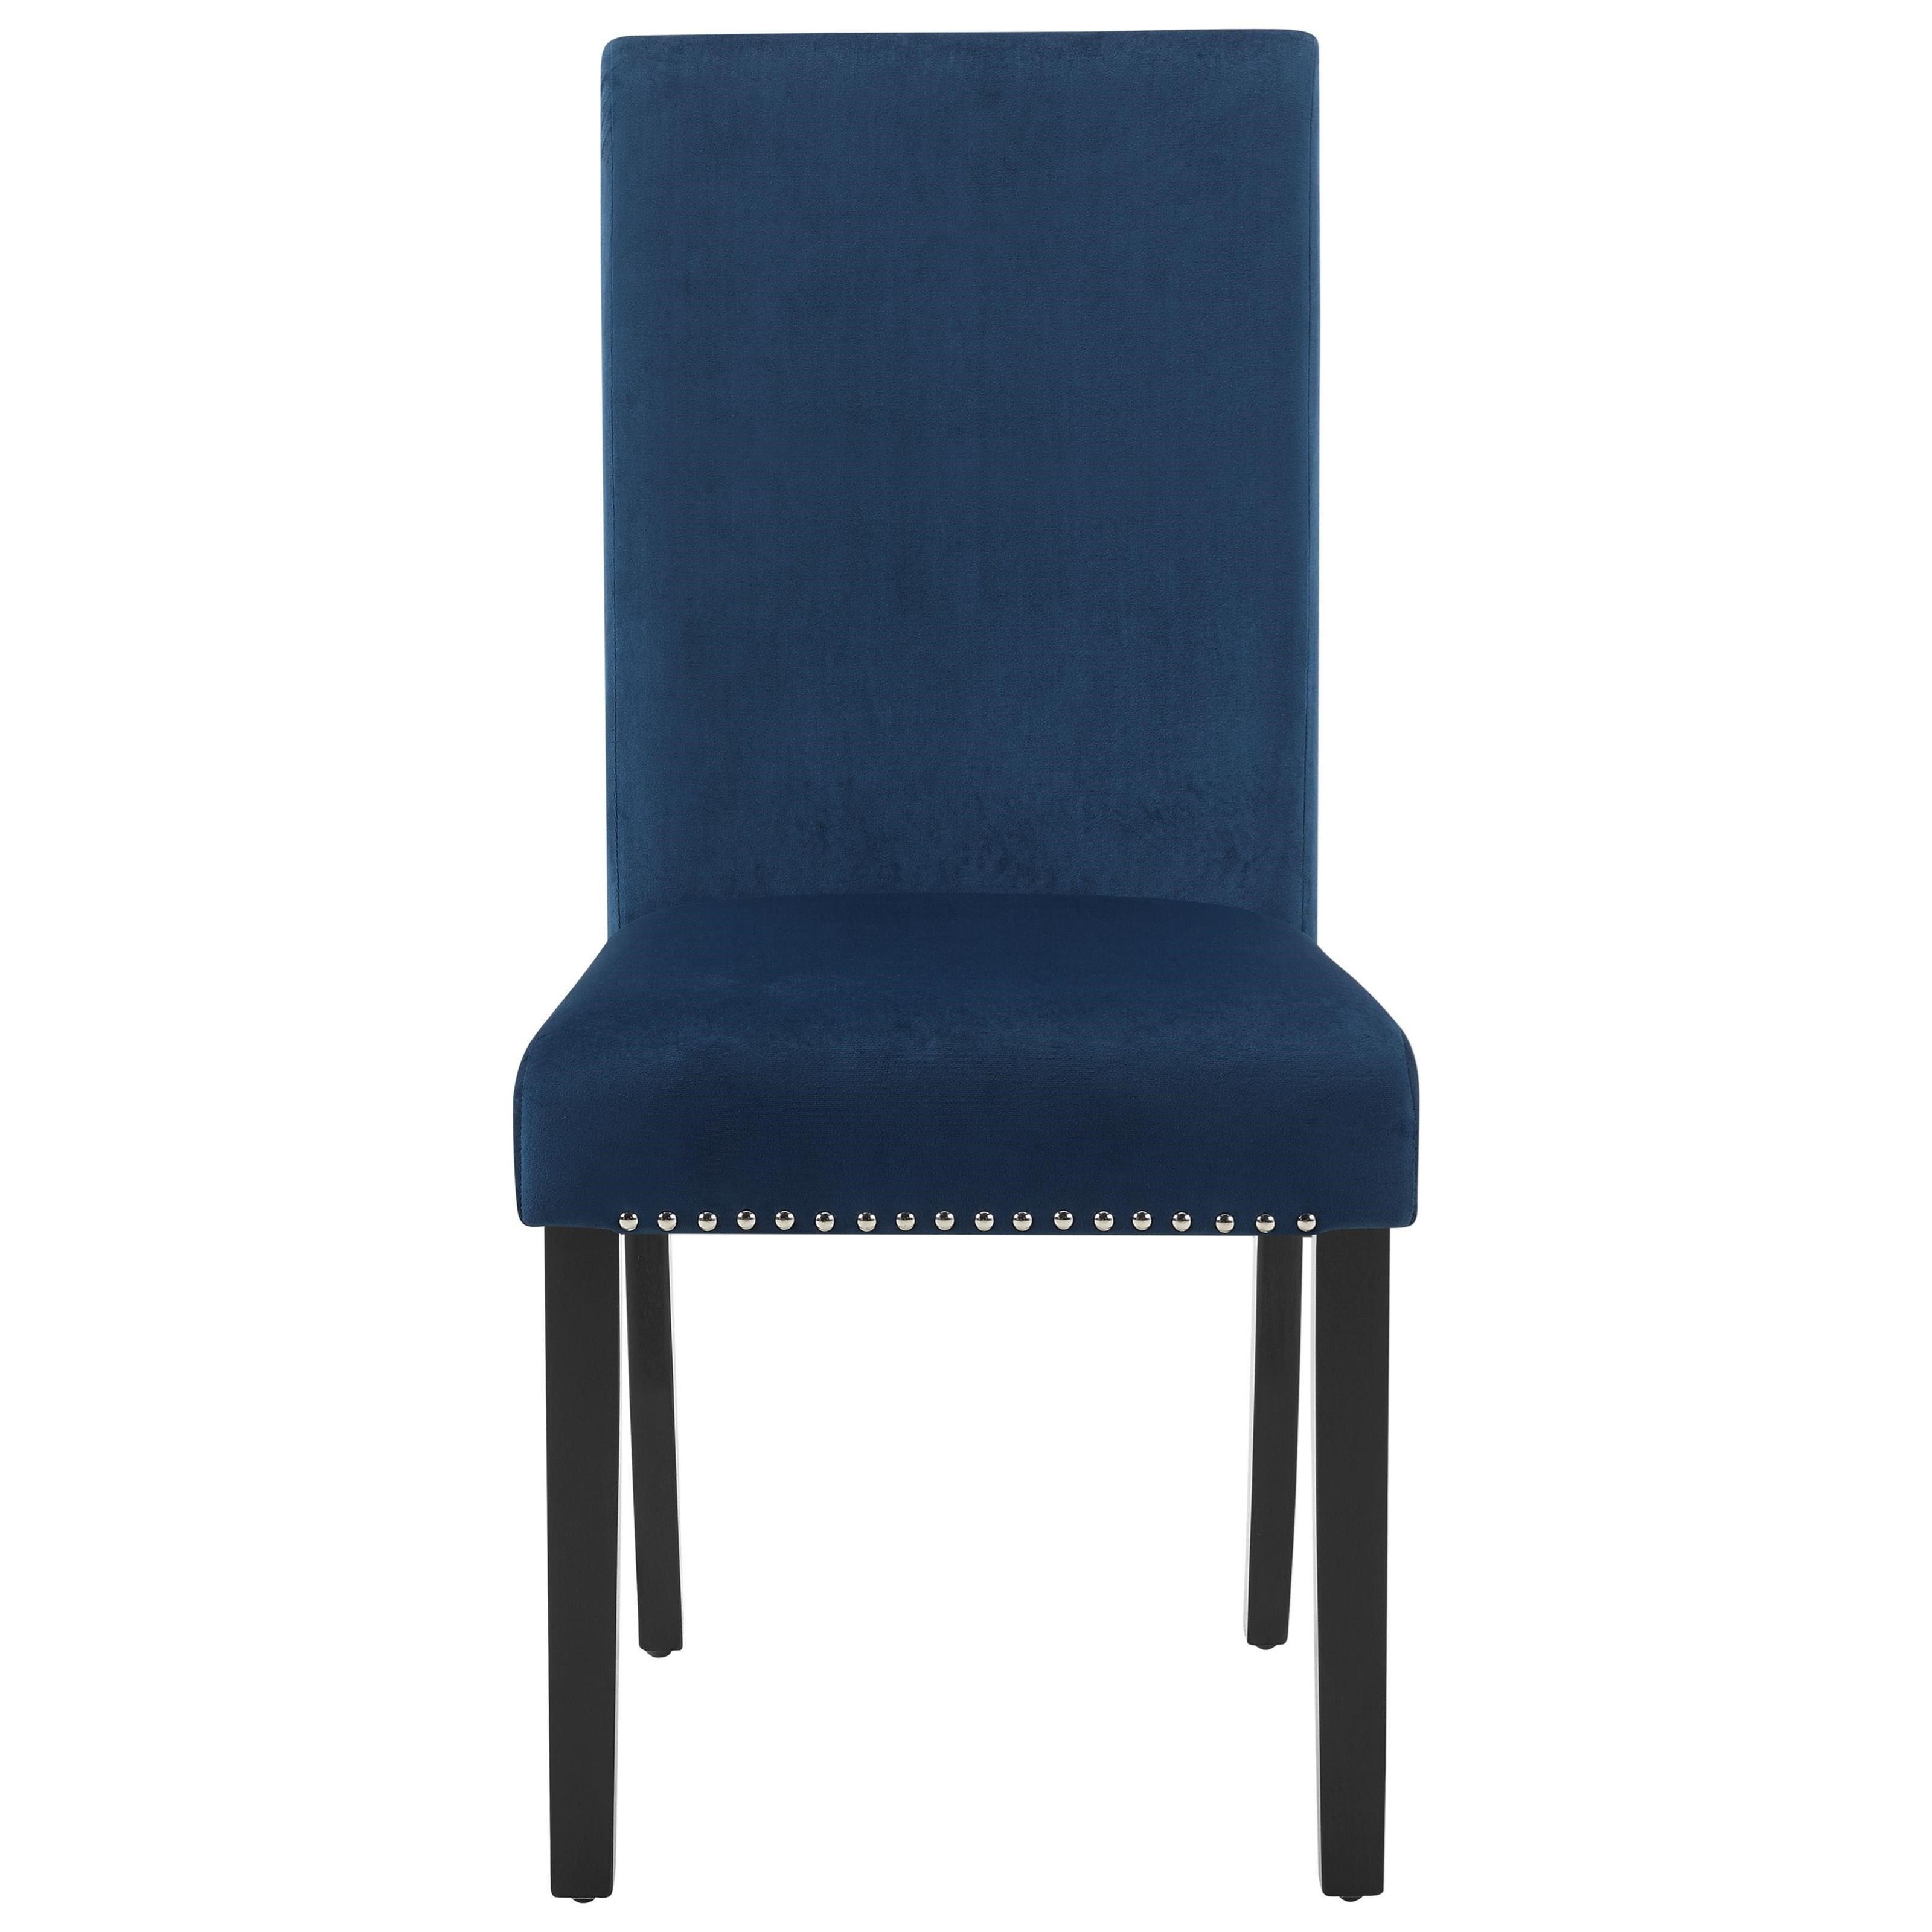 Celeste Dining Chair by New Classic at Wilson's Furniture